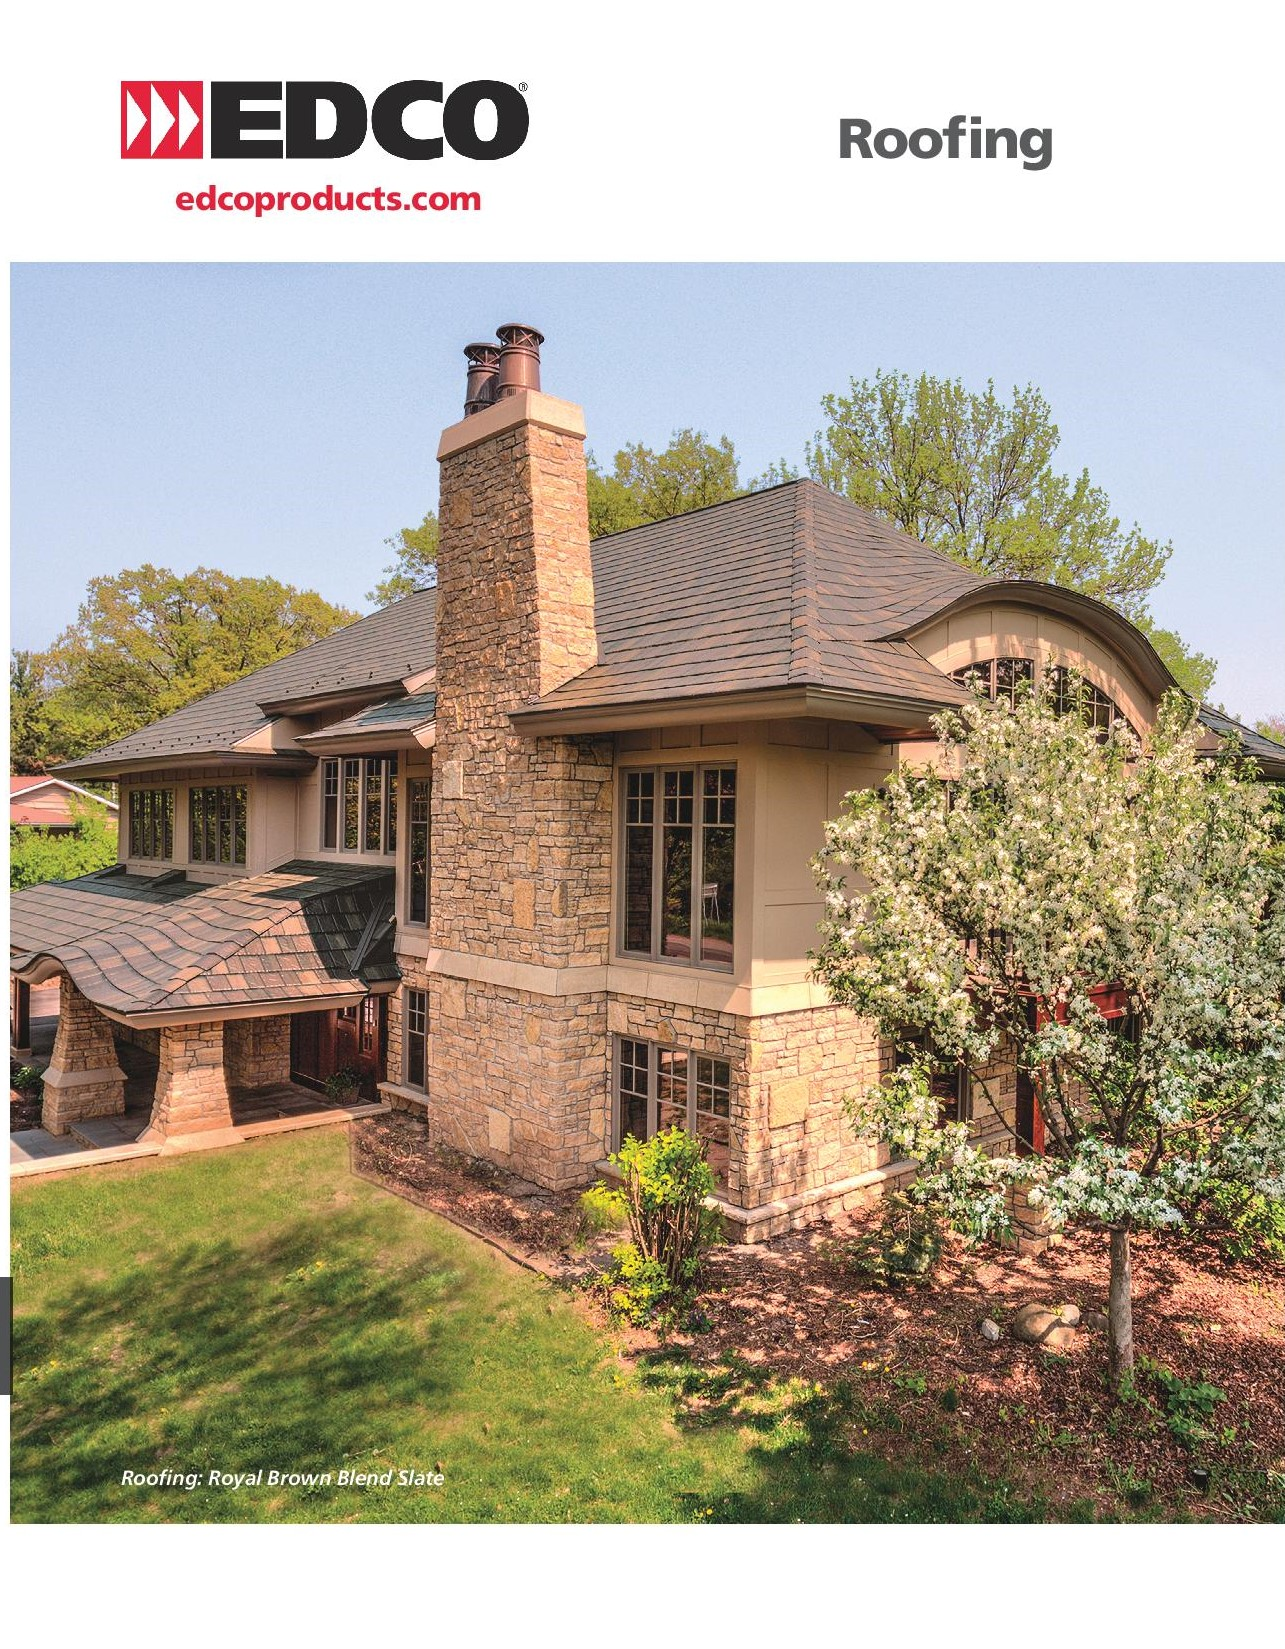 Edco roofing-march-2018-page-001